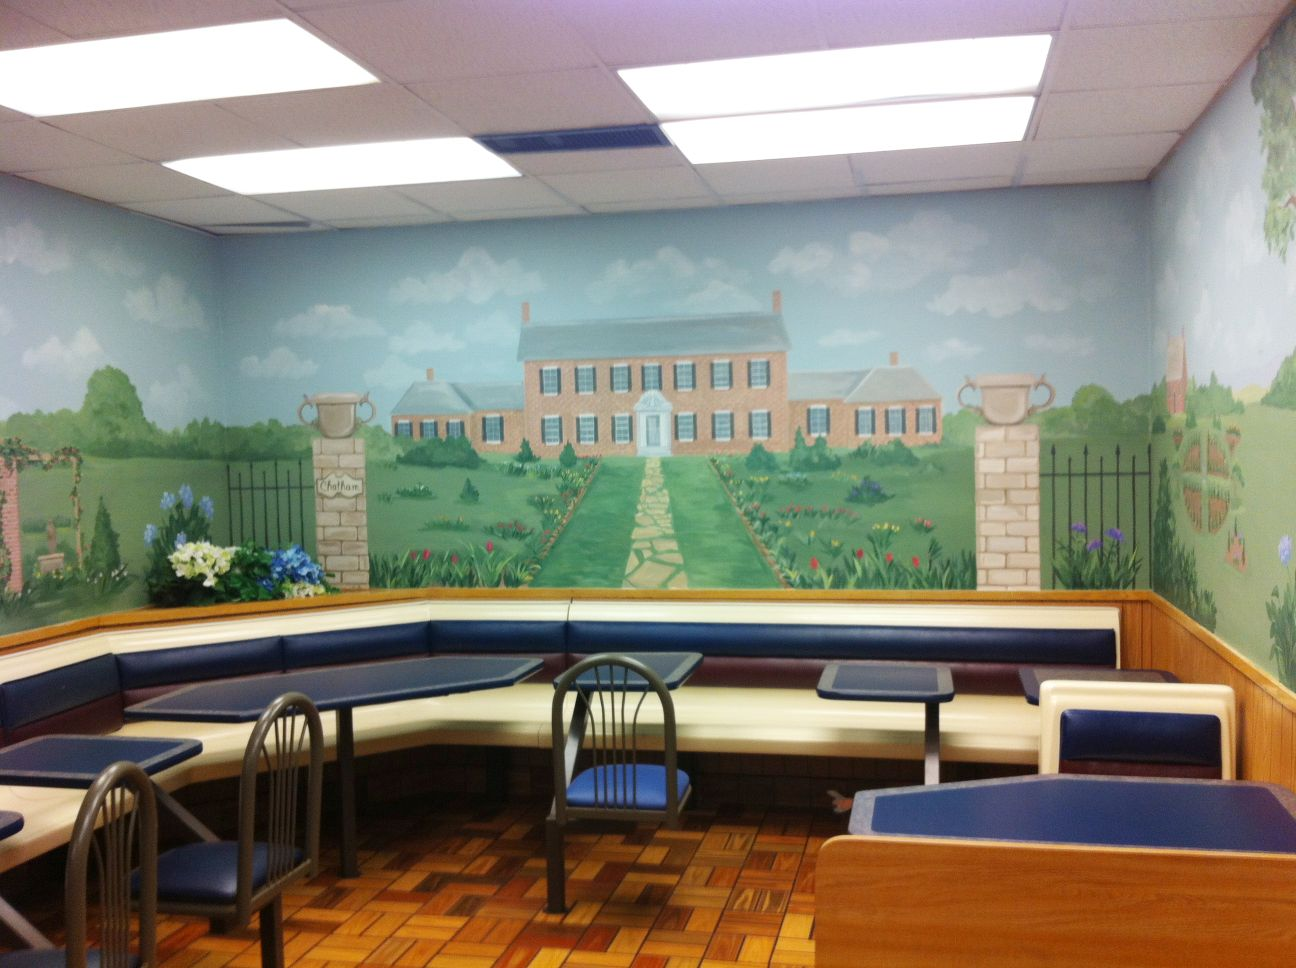 chatham_heights_mural_mcdonalds